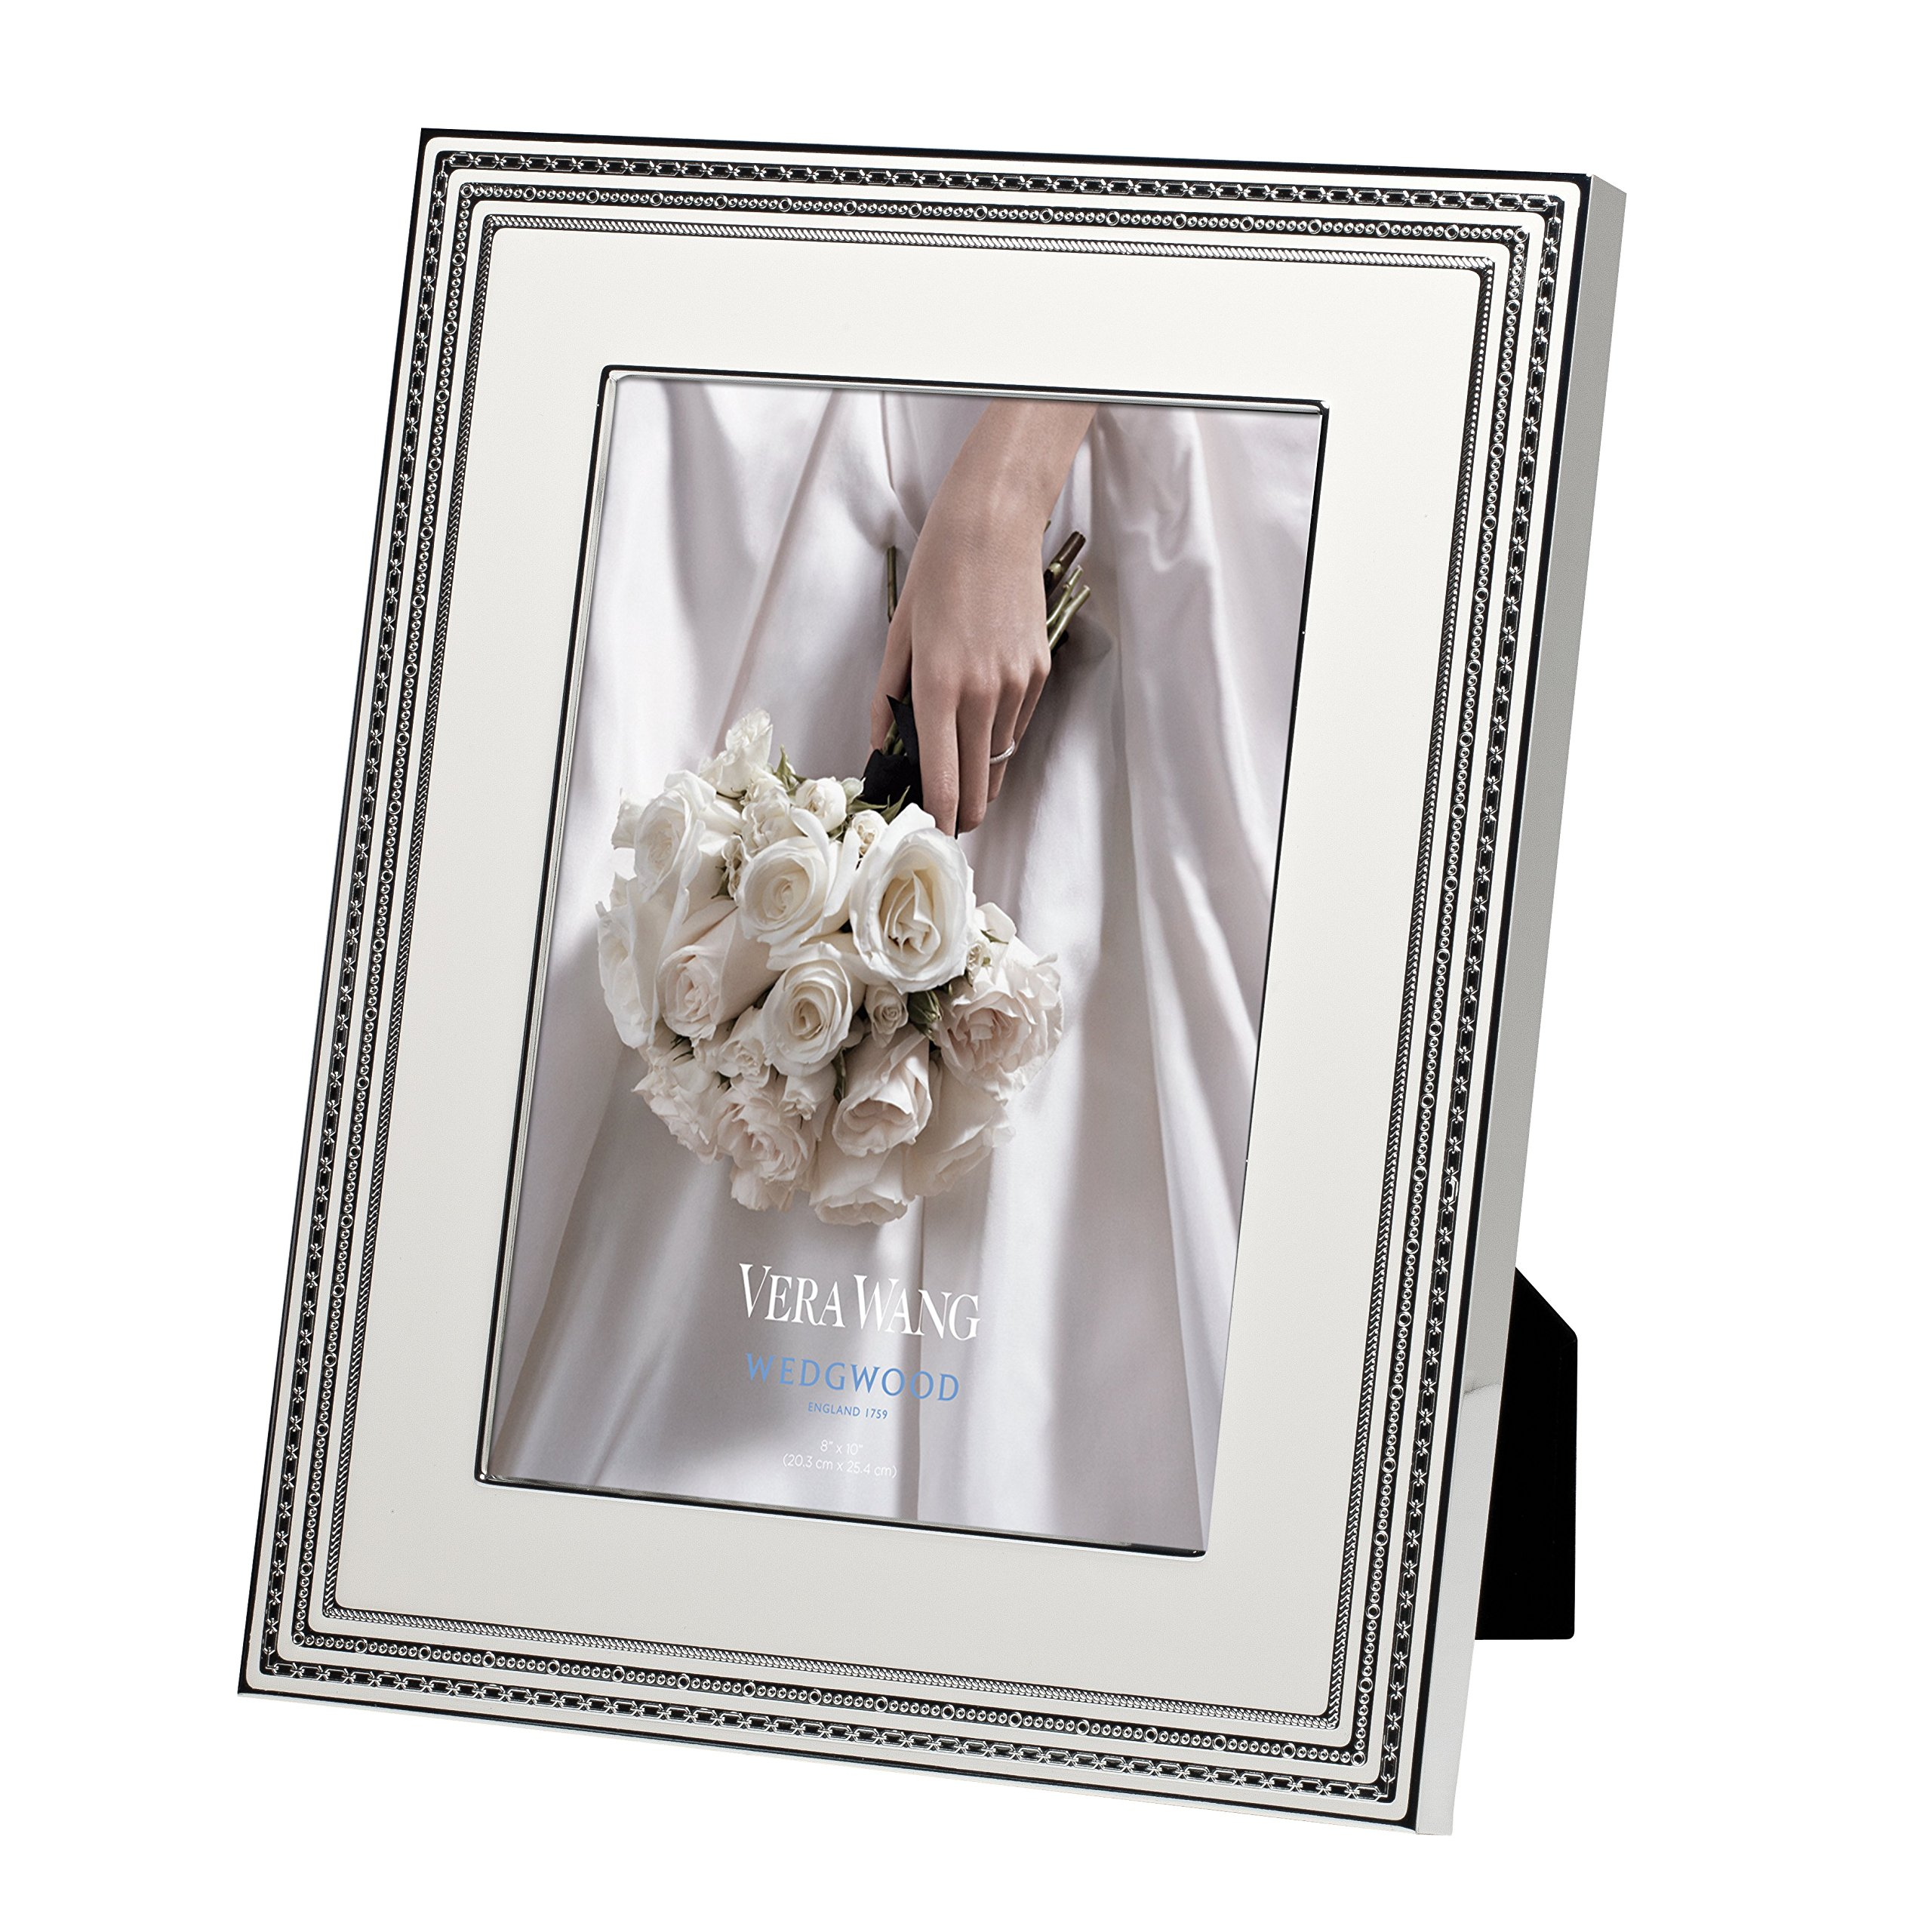 Wedgwood With Love Frame - 8'' x 10''